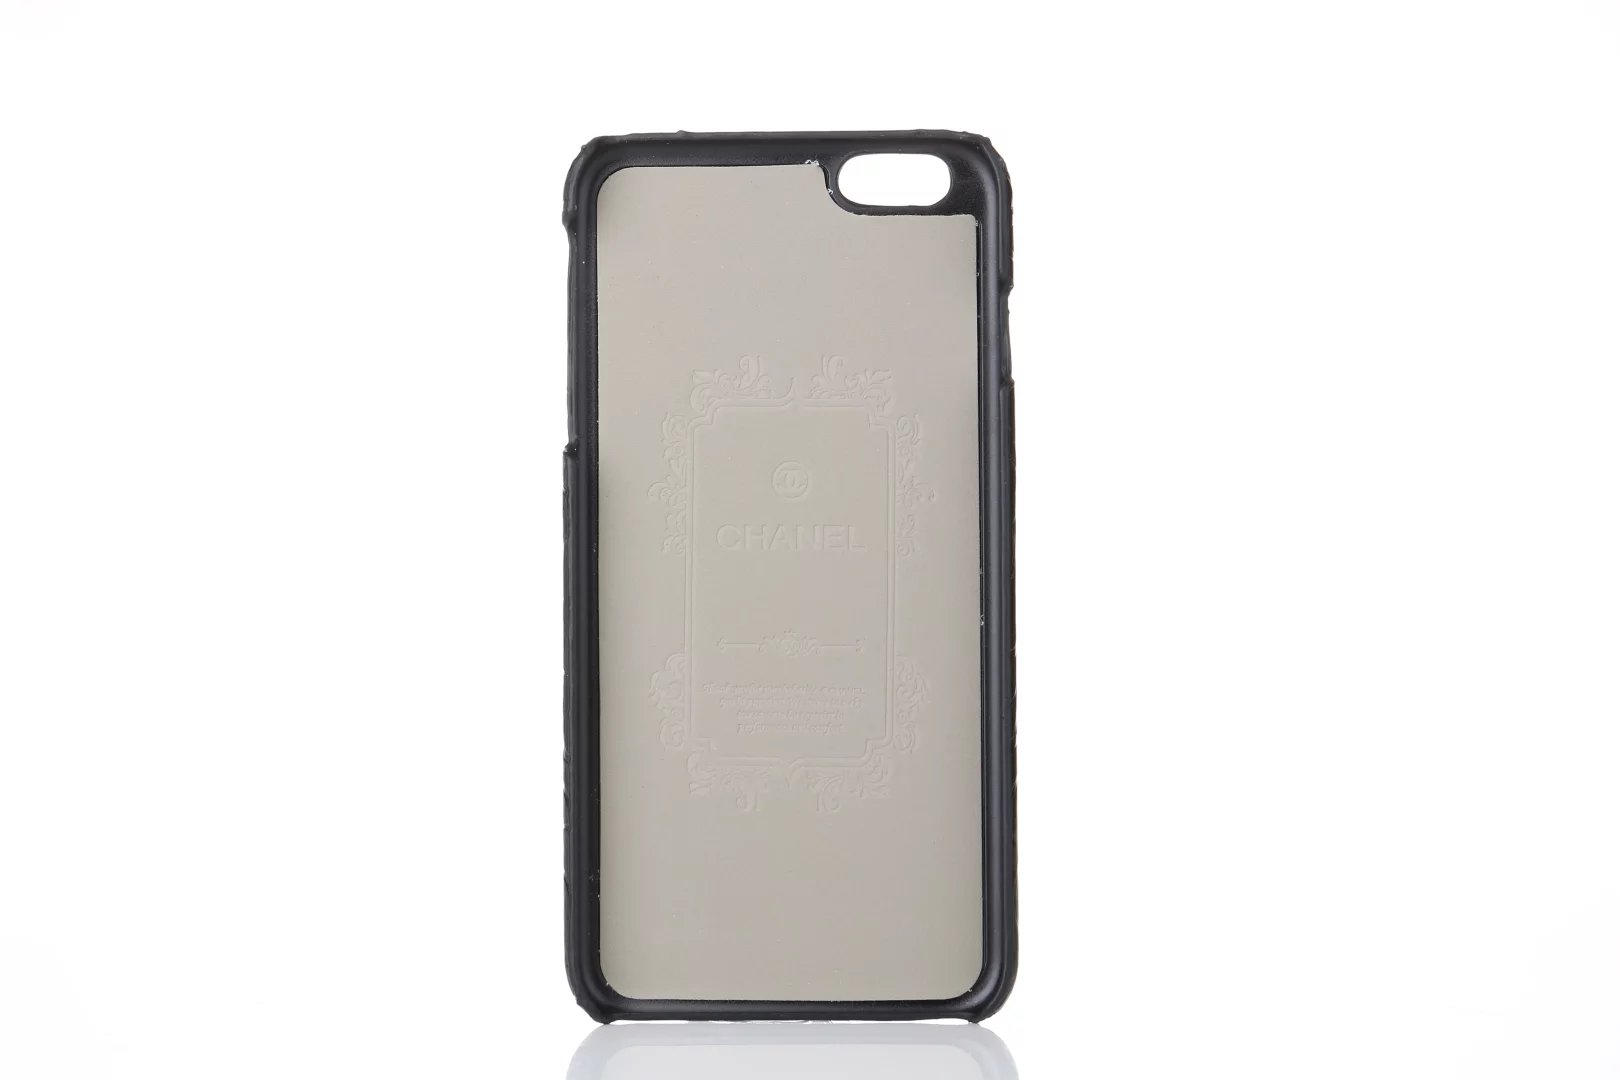 iphone covers for 6 Plus create a iphone 6 Plus case fashion iphone6 plus case places to get phone cases iphone 6 best case iphone 6 best cases 6 s phone cases green iphone 6 case latest iphone 6 cases